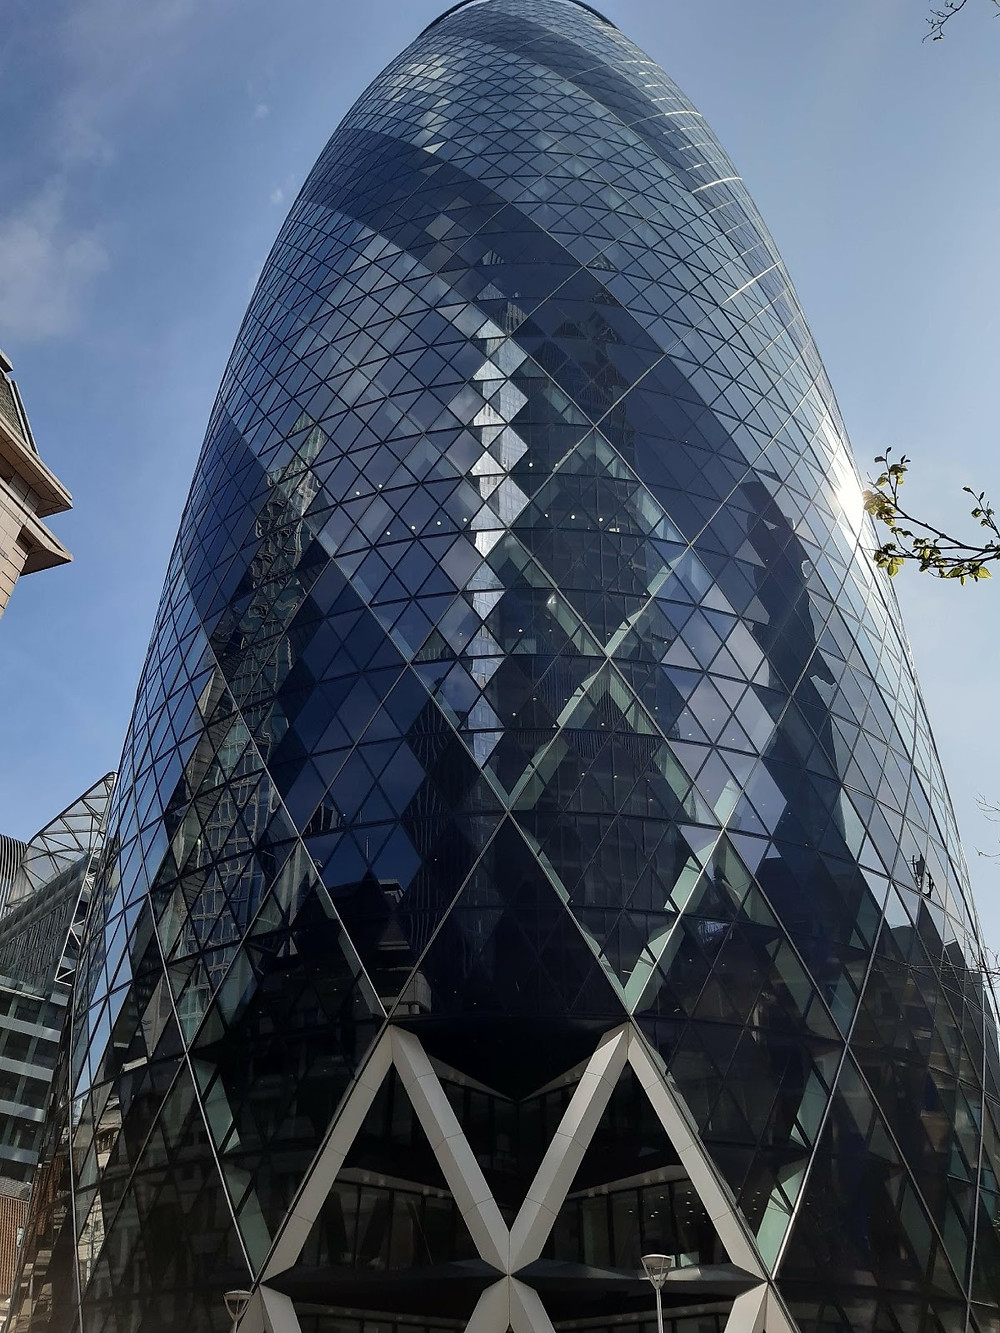 40 St Mary Axe or the Gherkin in the City of London